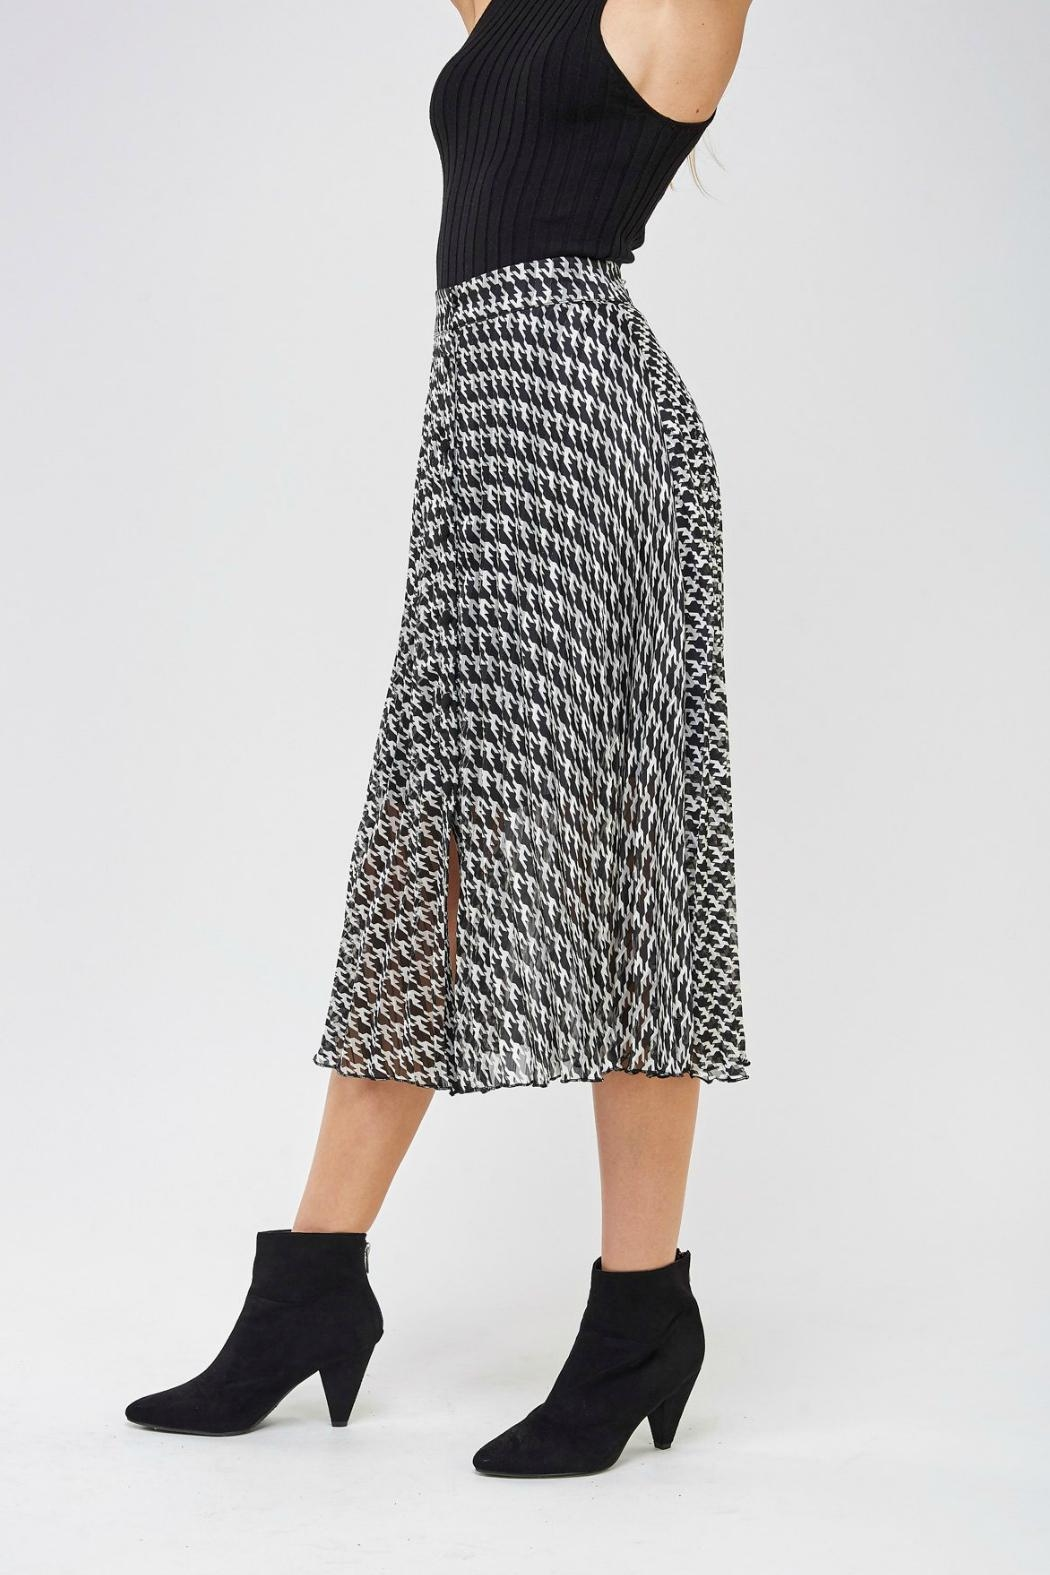 Miss Love Printed High-Waist Skirt - Side Cropped Image